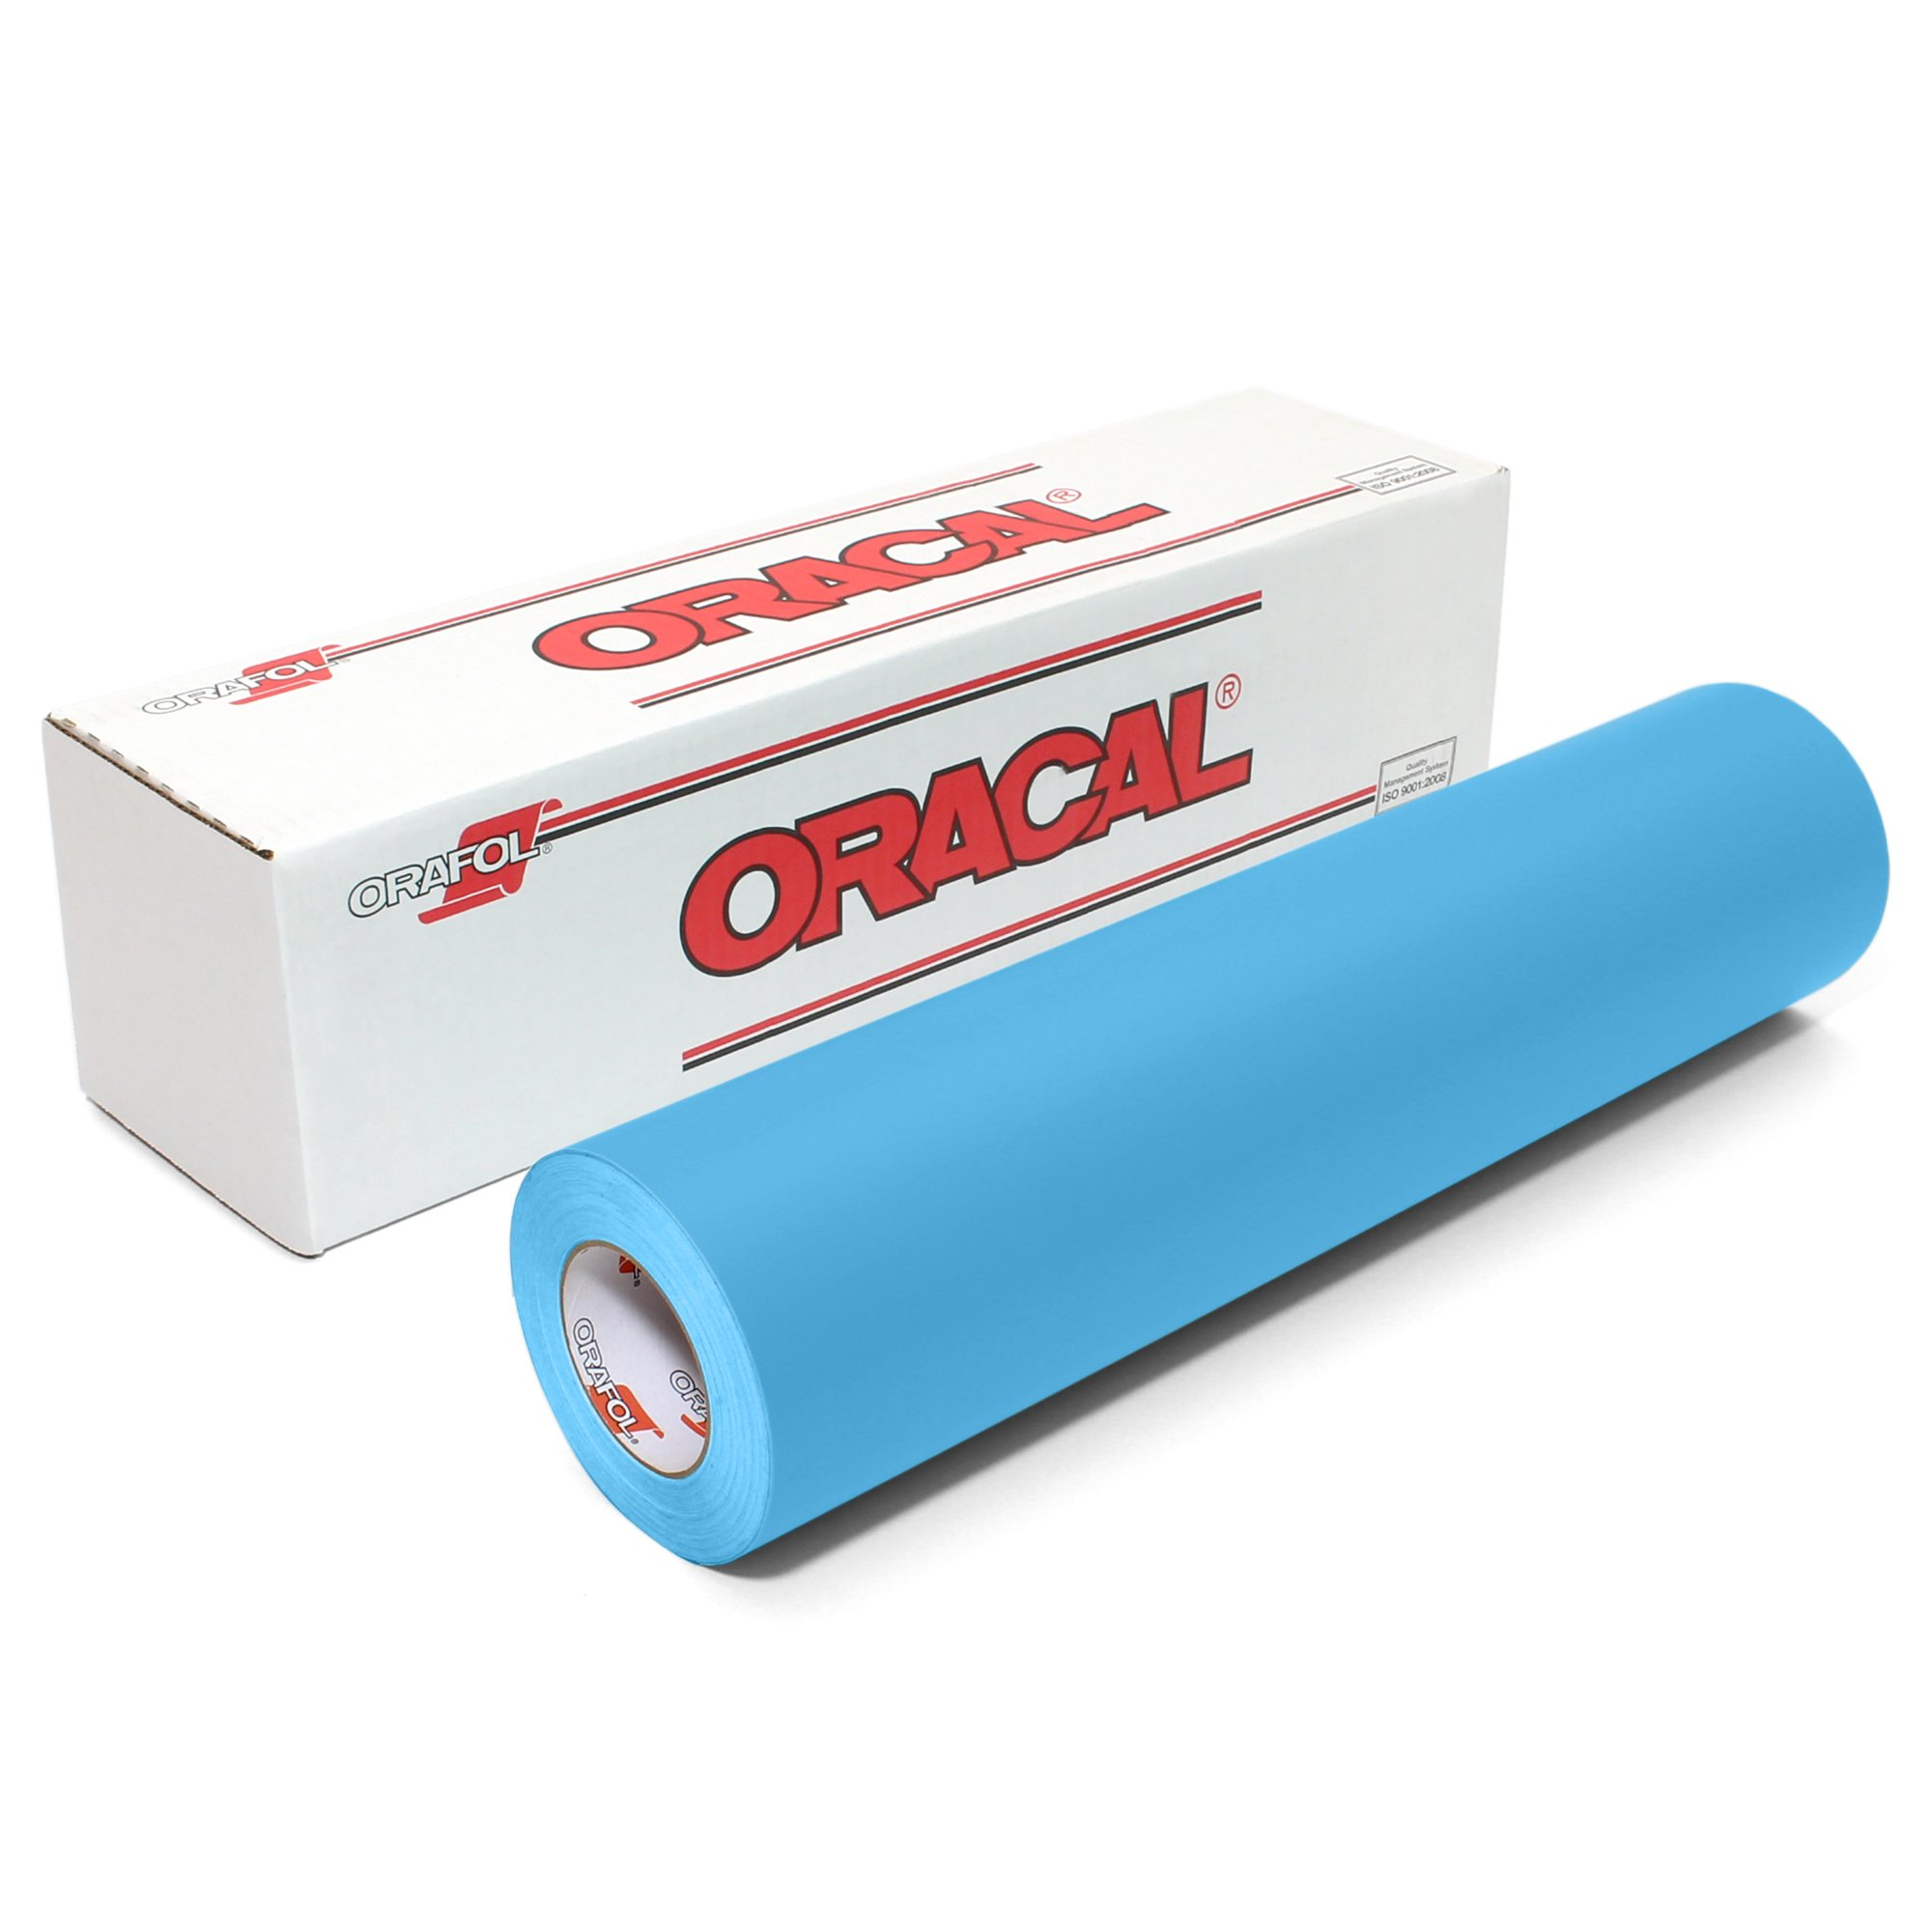 Oracal 631 Matte Vinyl Roll 12 Inches by 150 Feet - 87 Available Colors